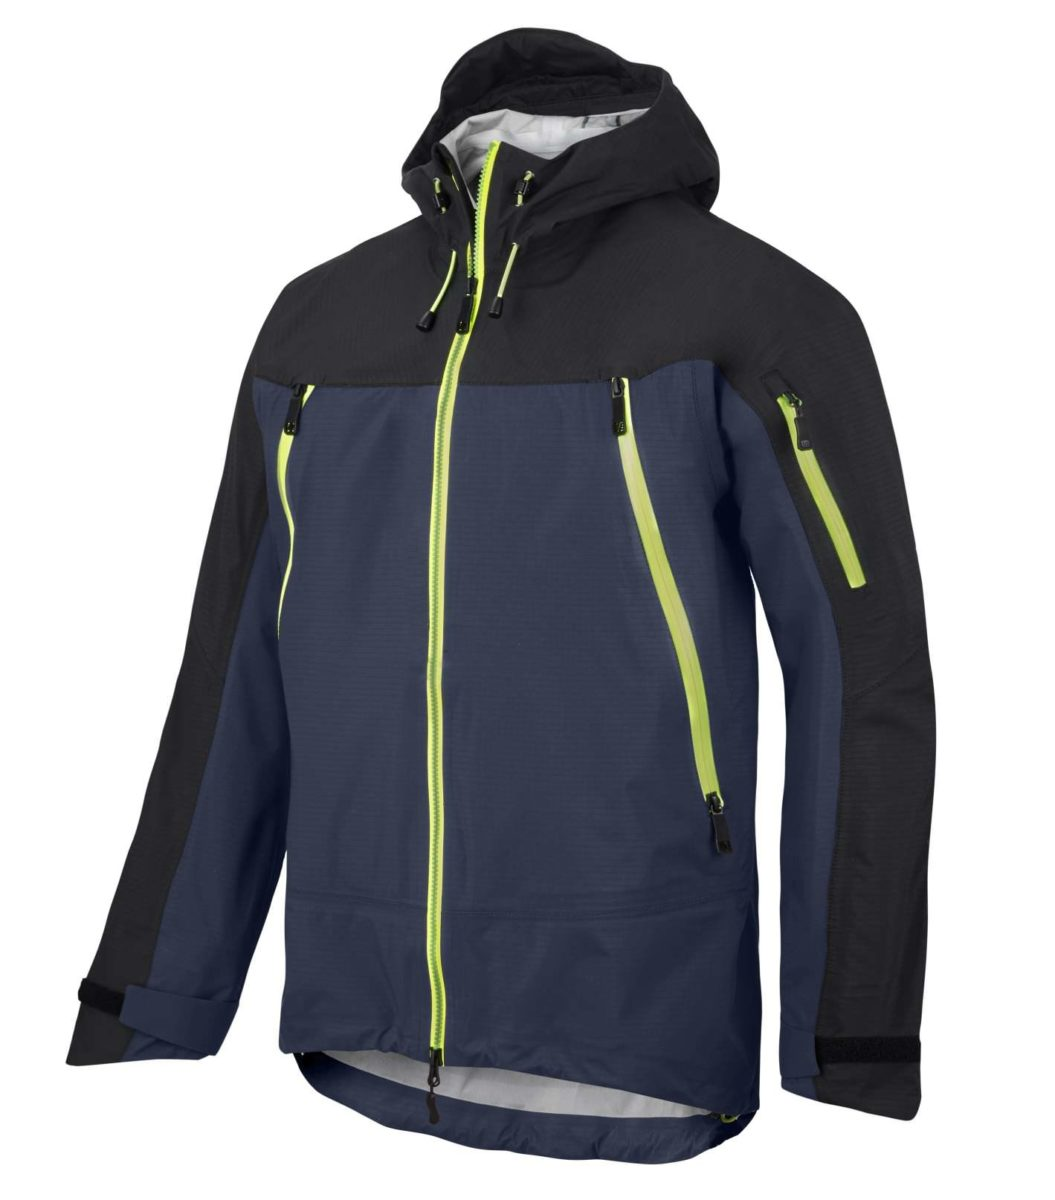 Snickers 1303 AllroundWork, Waterproof Shell Jacket